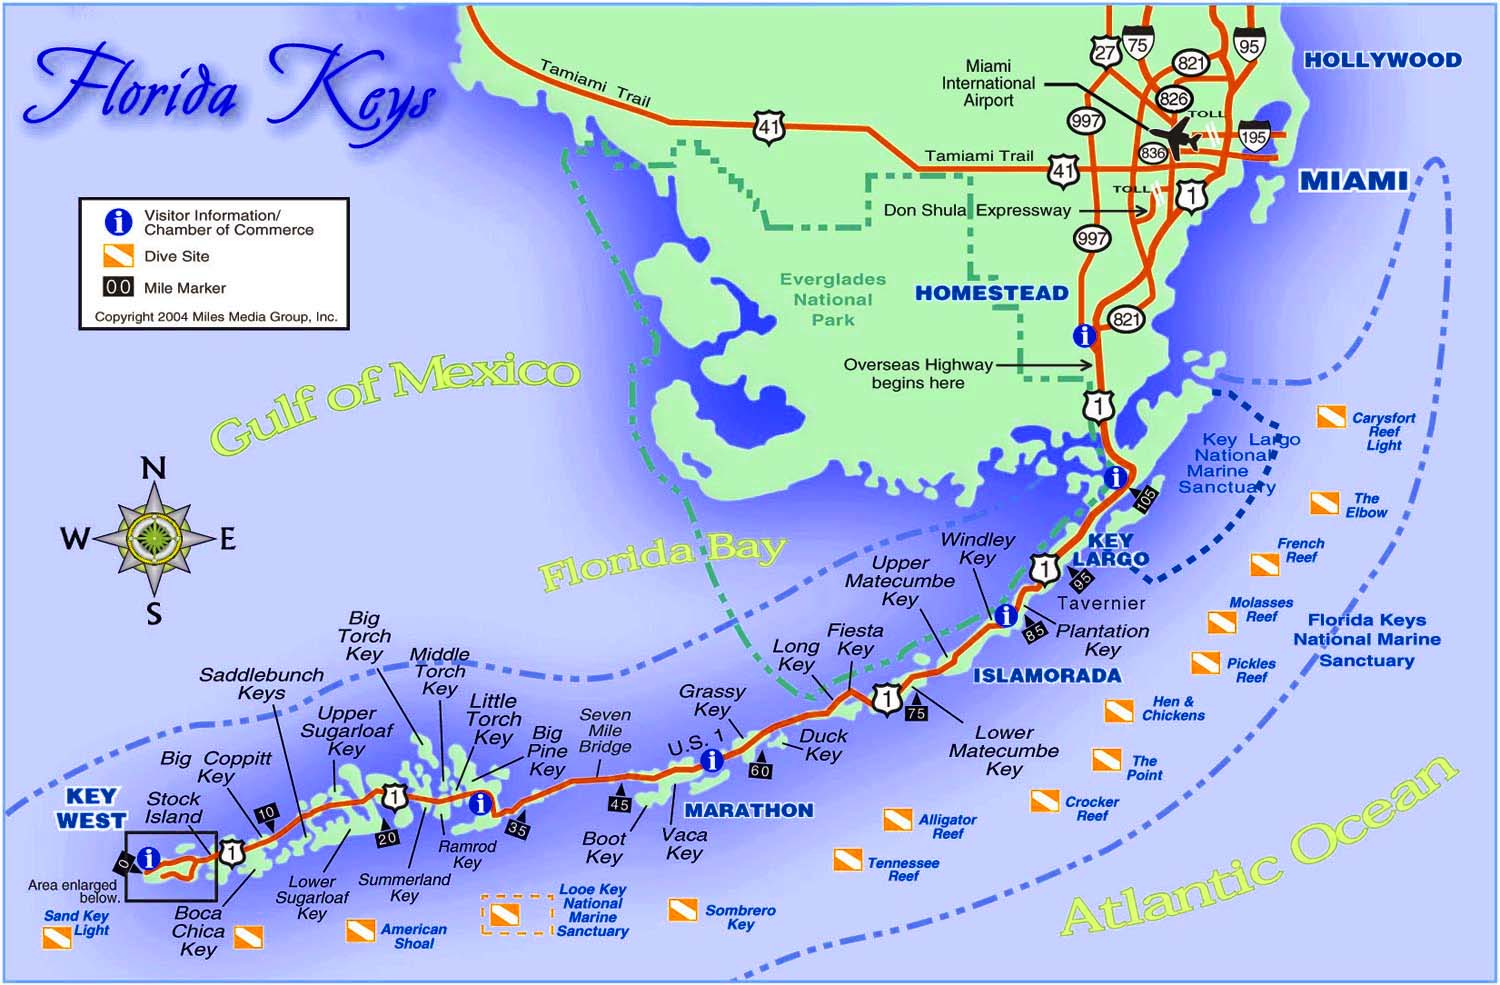 Map Key West Florida.Gulf Of Mexico Oil Spill Blog Seafood Gulf Of Mexico Oil Spill Blog